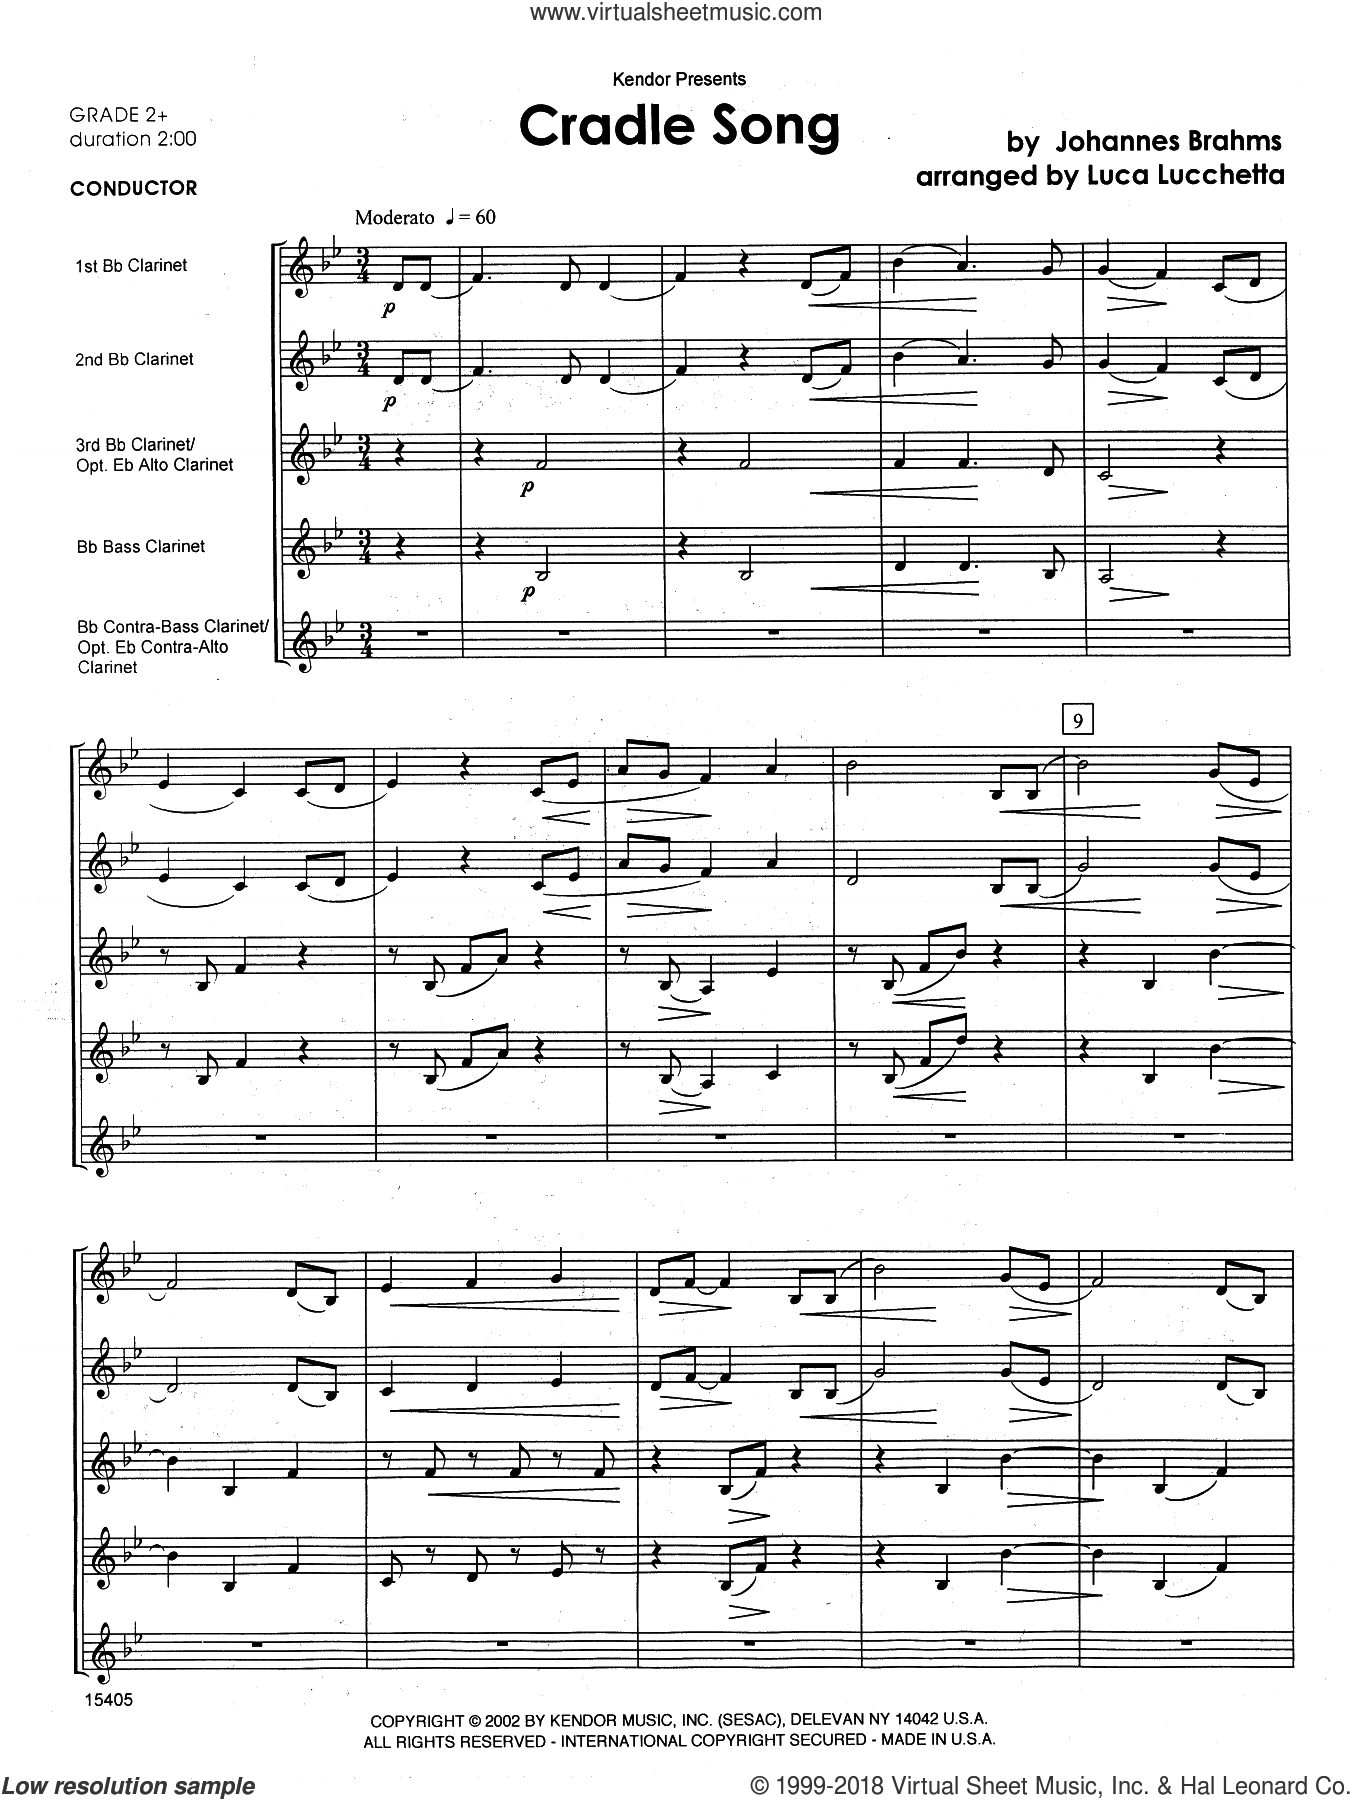 Cradle Song (COMPLETE) sheet music for clarinet quintet by Johannes Brahms and Lucchetta, classical score, intermediate